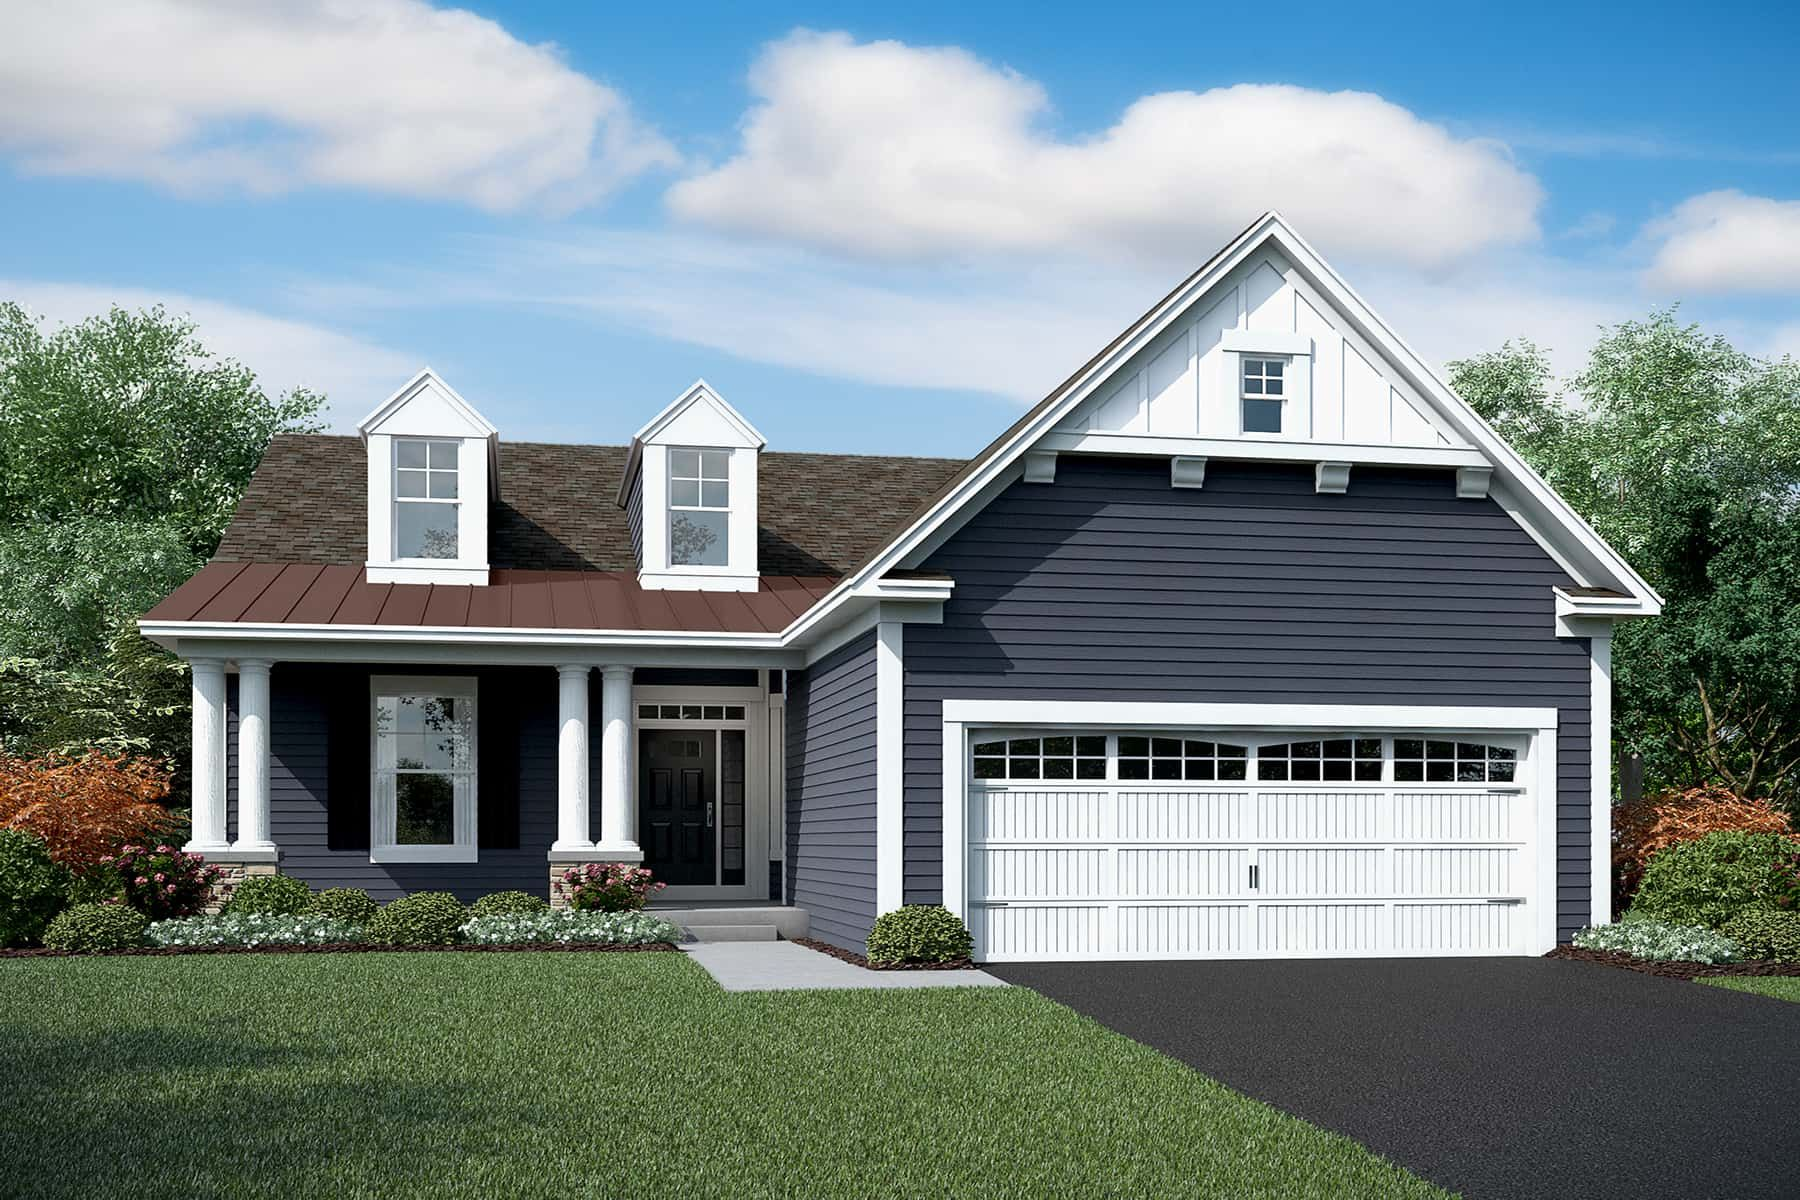 Single Family for Active at Wentworth Of Kildeer - Berkley 23760 N Old Mchenry Road Kildeer, Illinois 60047 United States